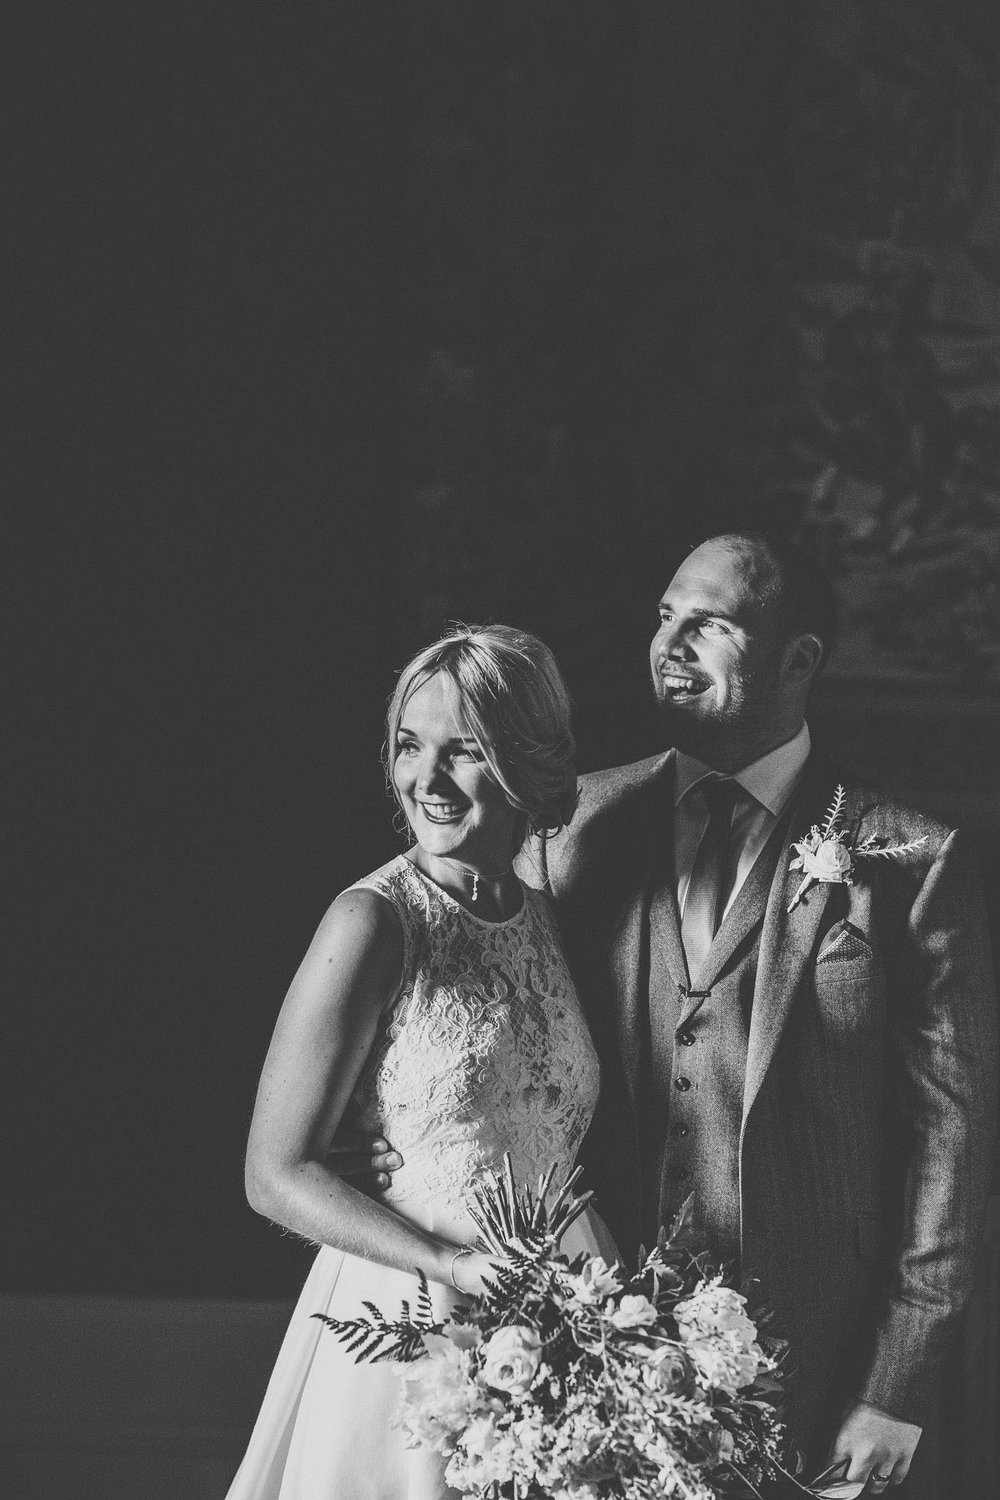 allerton_castle_wedding_photographer-73.jpg